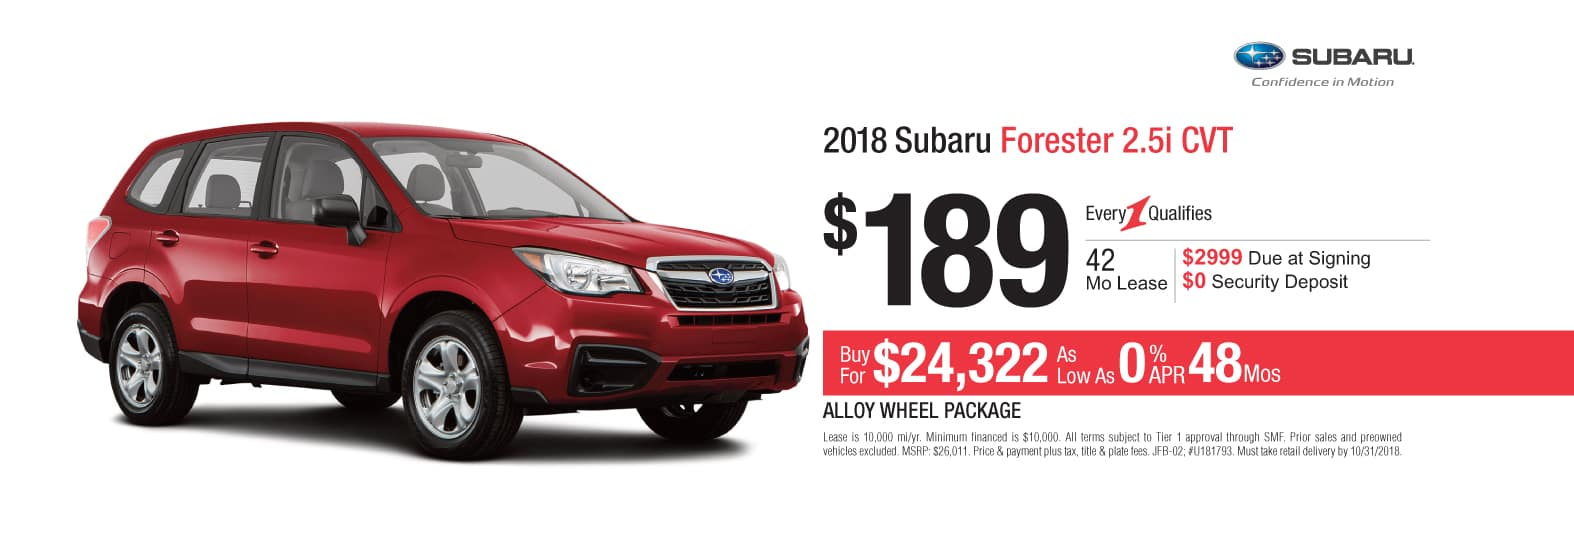 New Car Specials At Cochran Subaru In Allegheny County Near Pittsburgh 2002 Forester Fuel Filter Location 2018